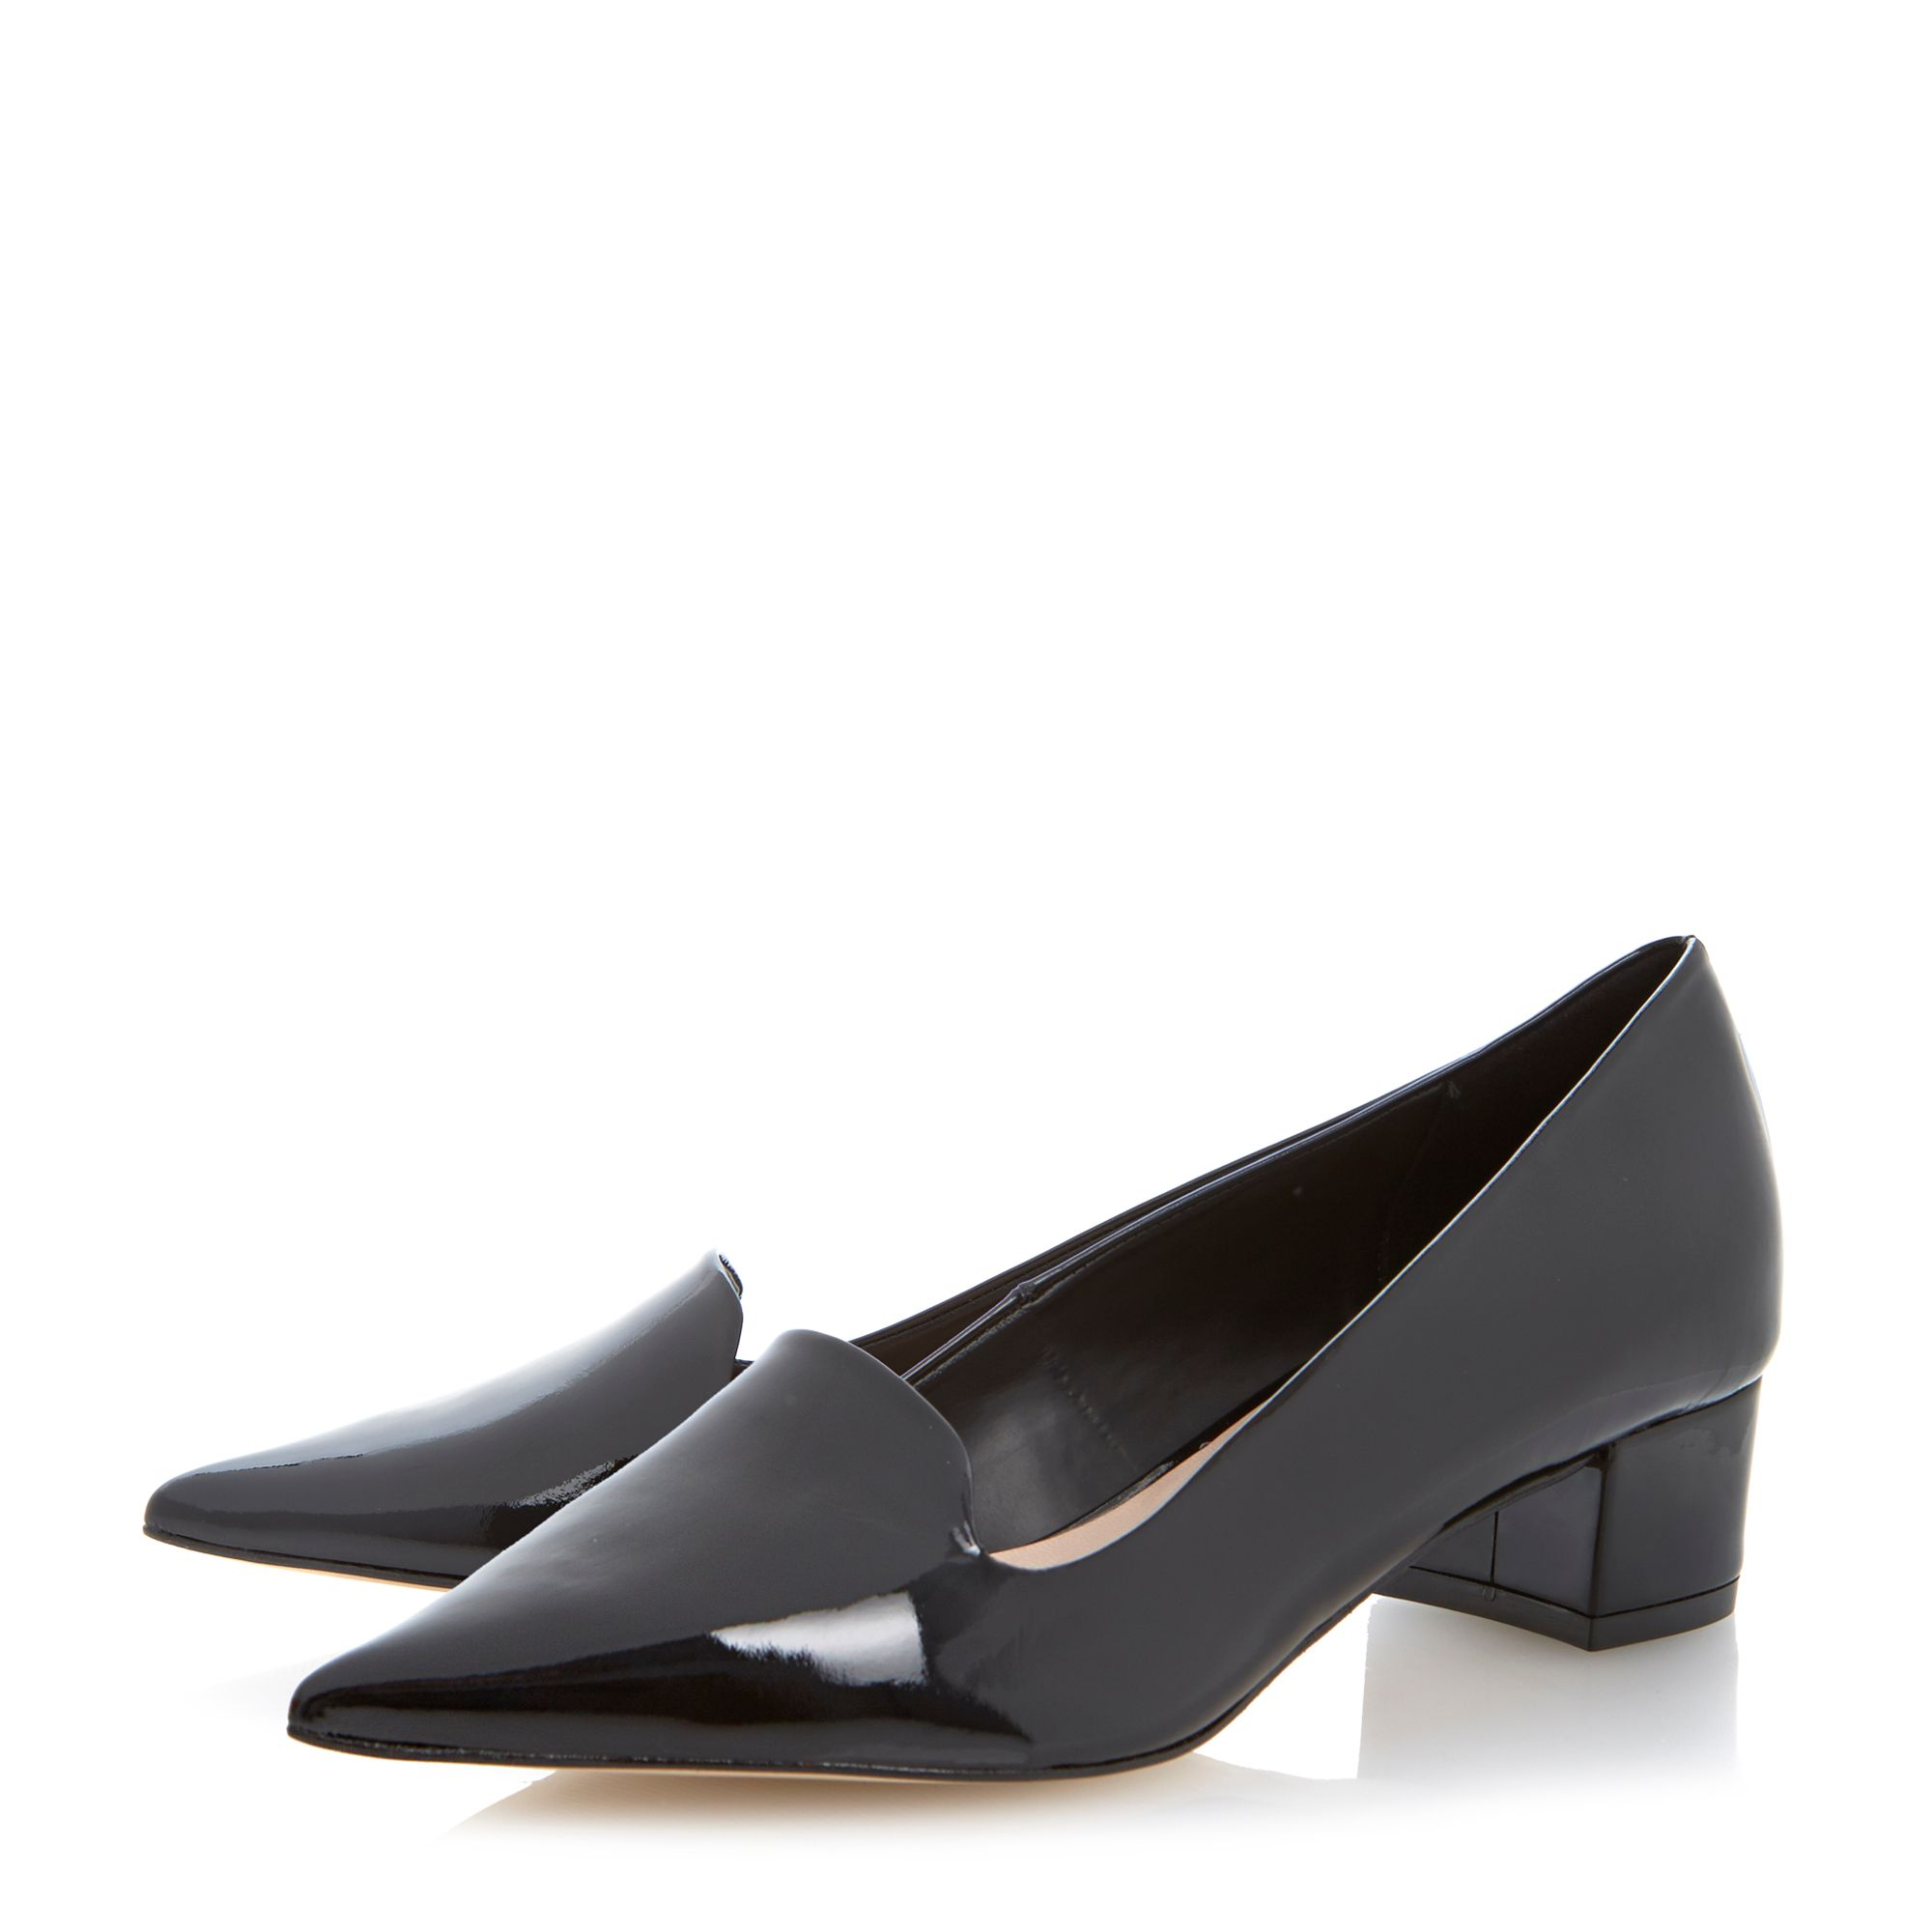 Affina medium wedge pointed court shoes